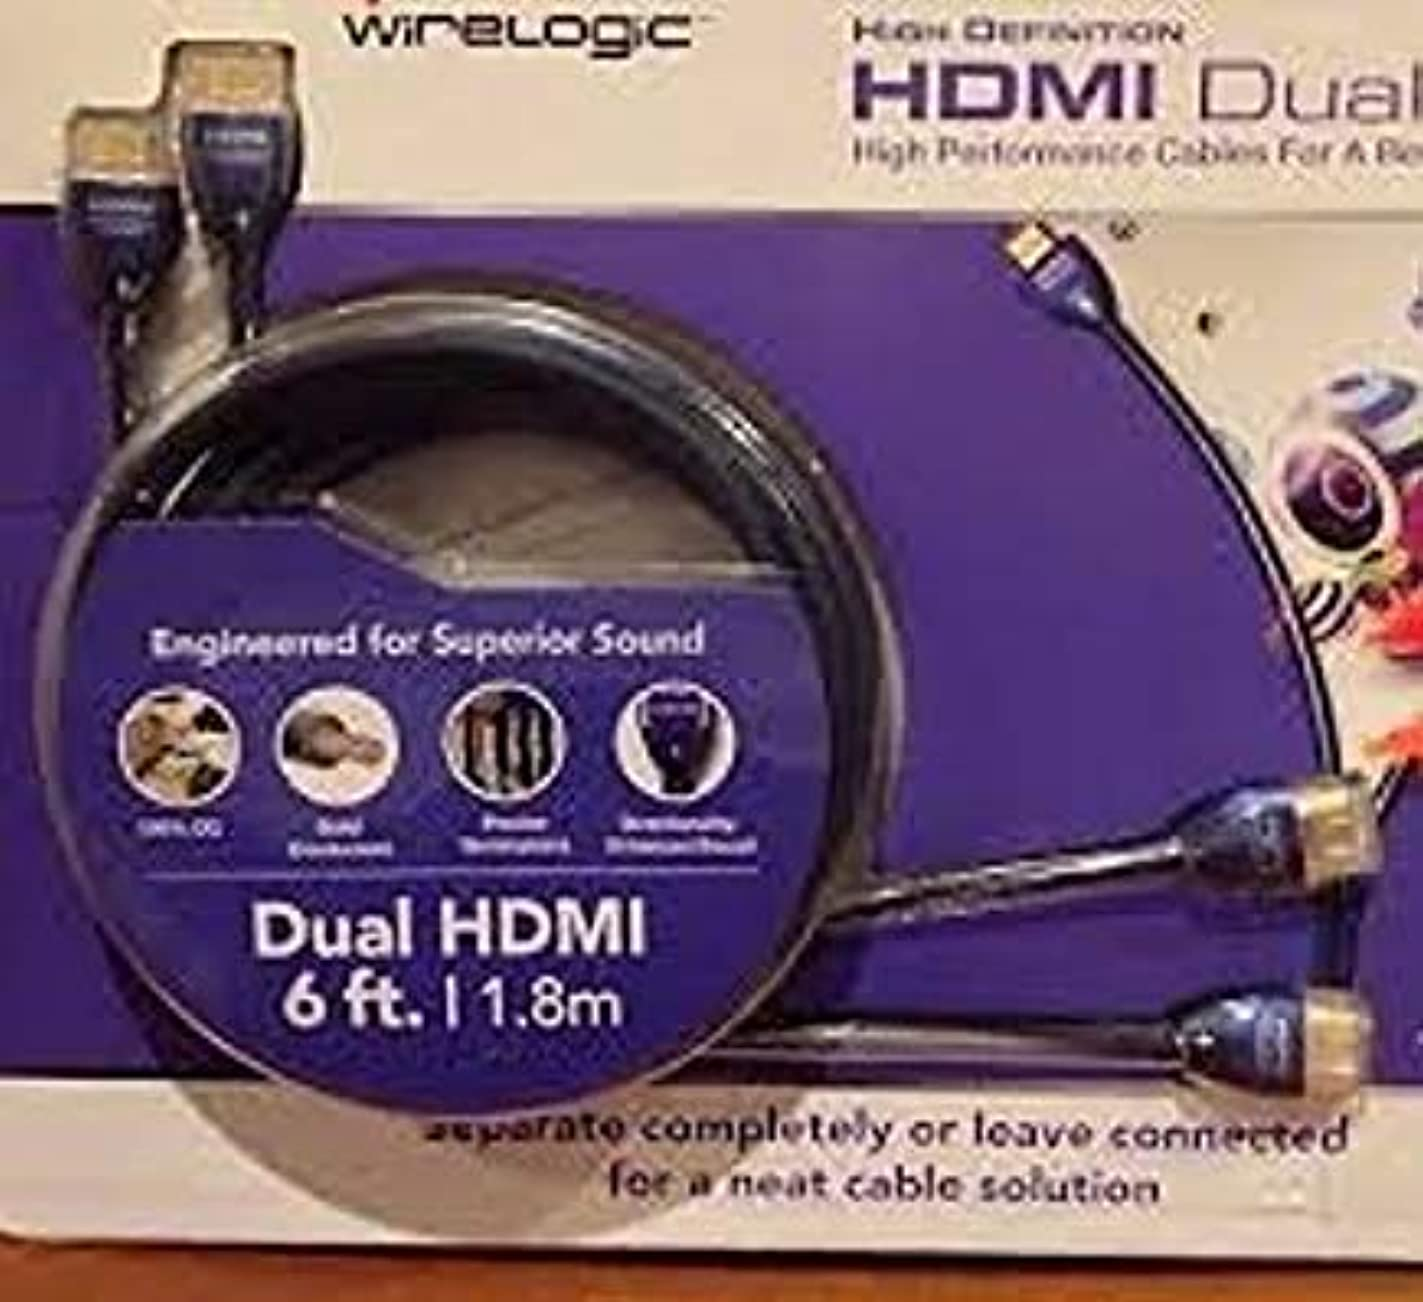 WIRELOGIC HDMI High Speed with Ethernet Dual Cable 6 feet HDTV wxr14696086